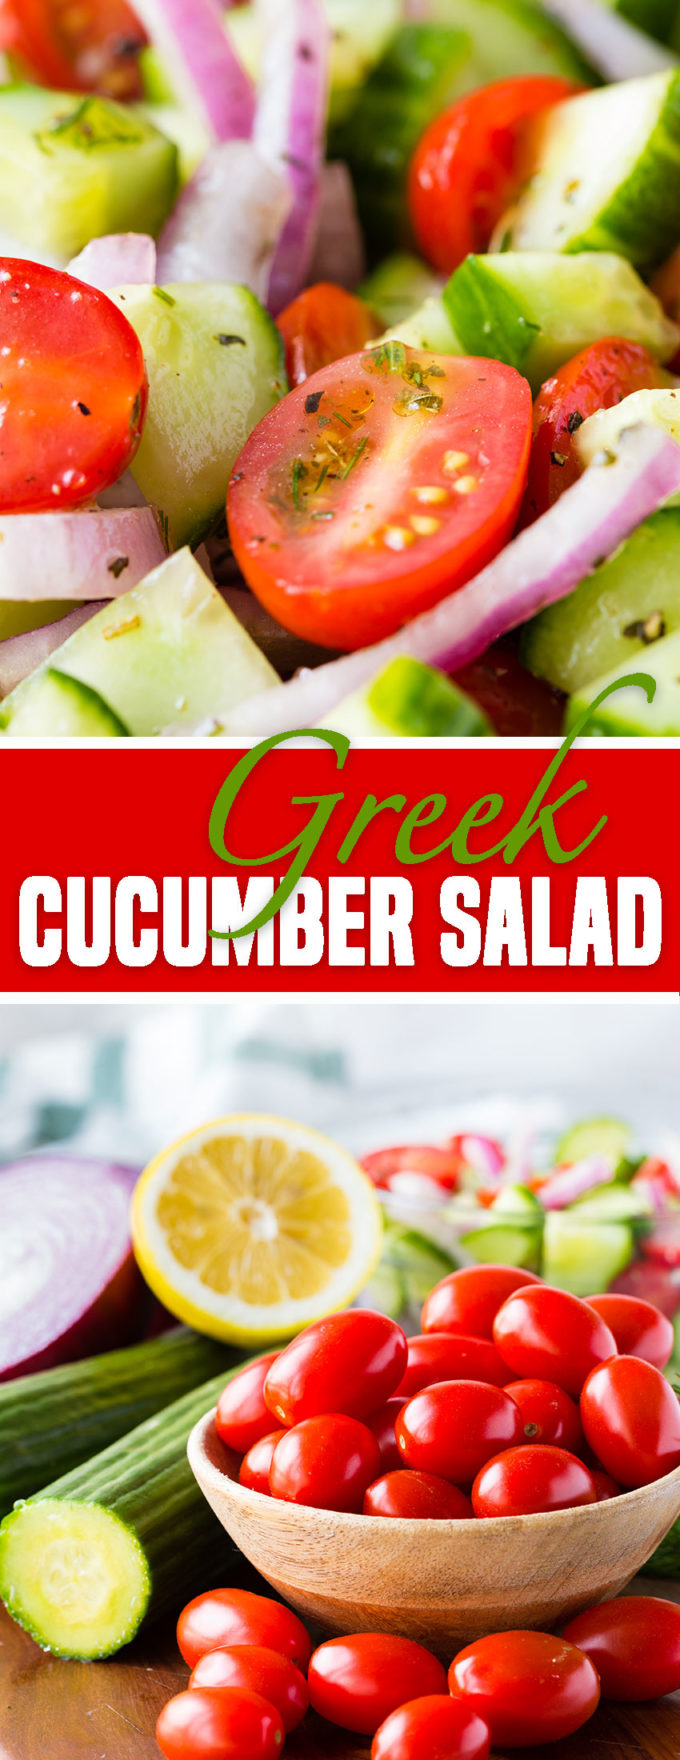 Greek Cucumber Salad - tomato, cucumber, and red onions in a greek dressing